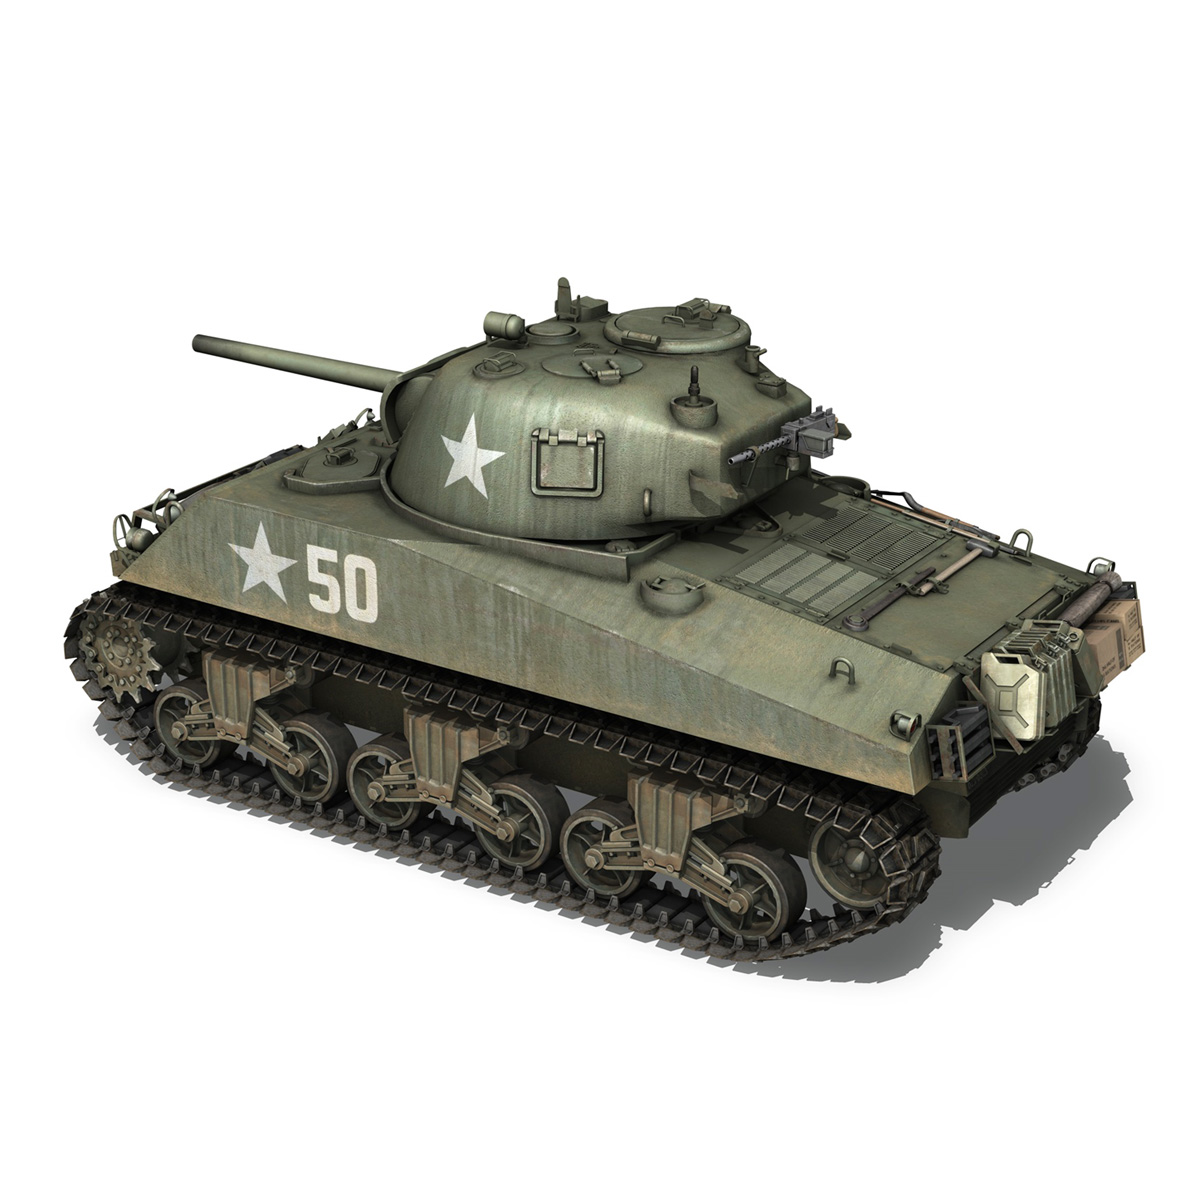 m4a3 75mm – sherman – 50 3d model 3ds fbx lwo lw lws obj c4d 265527